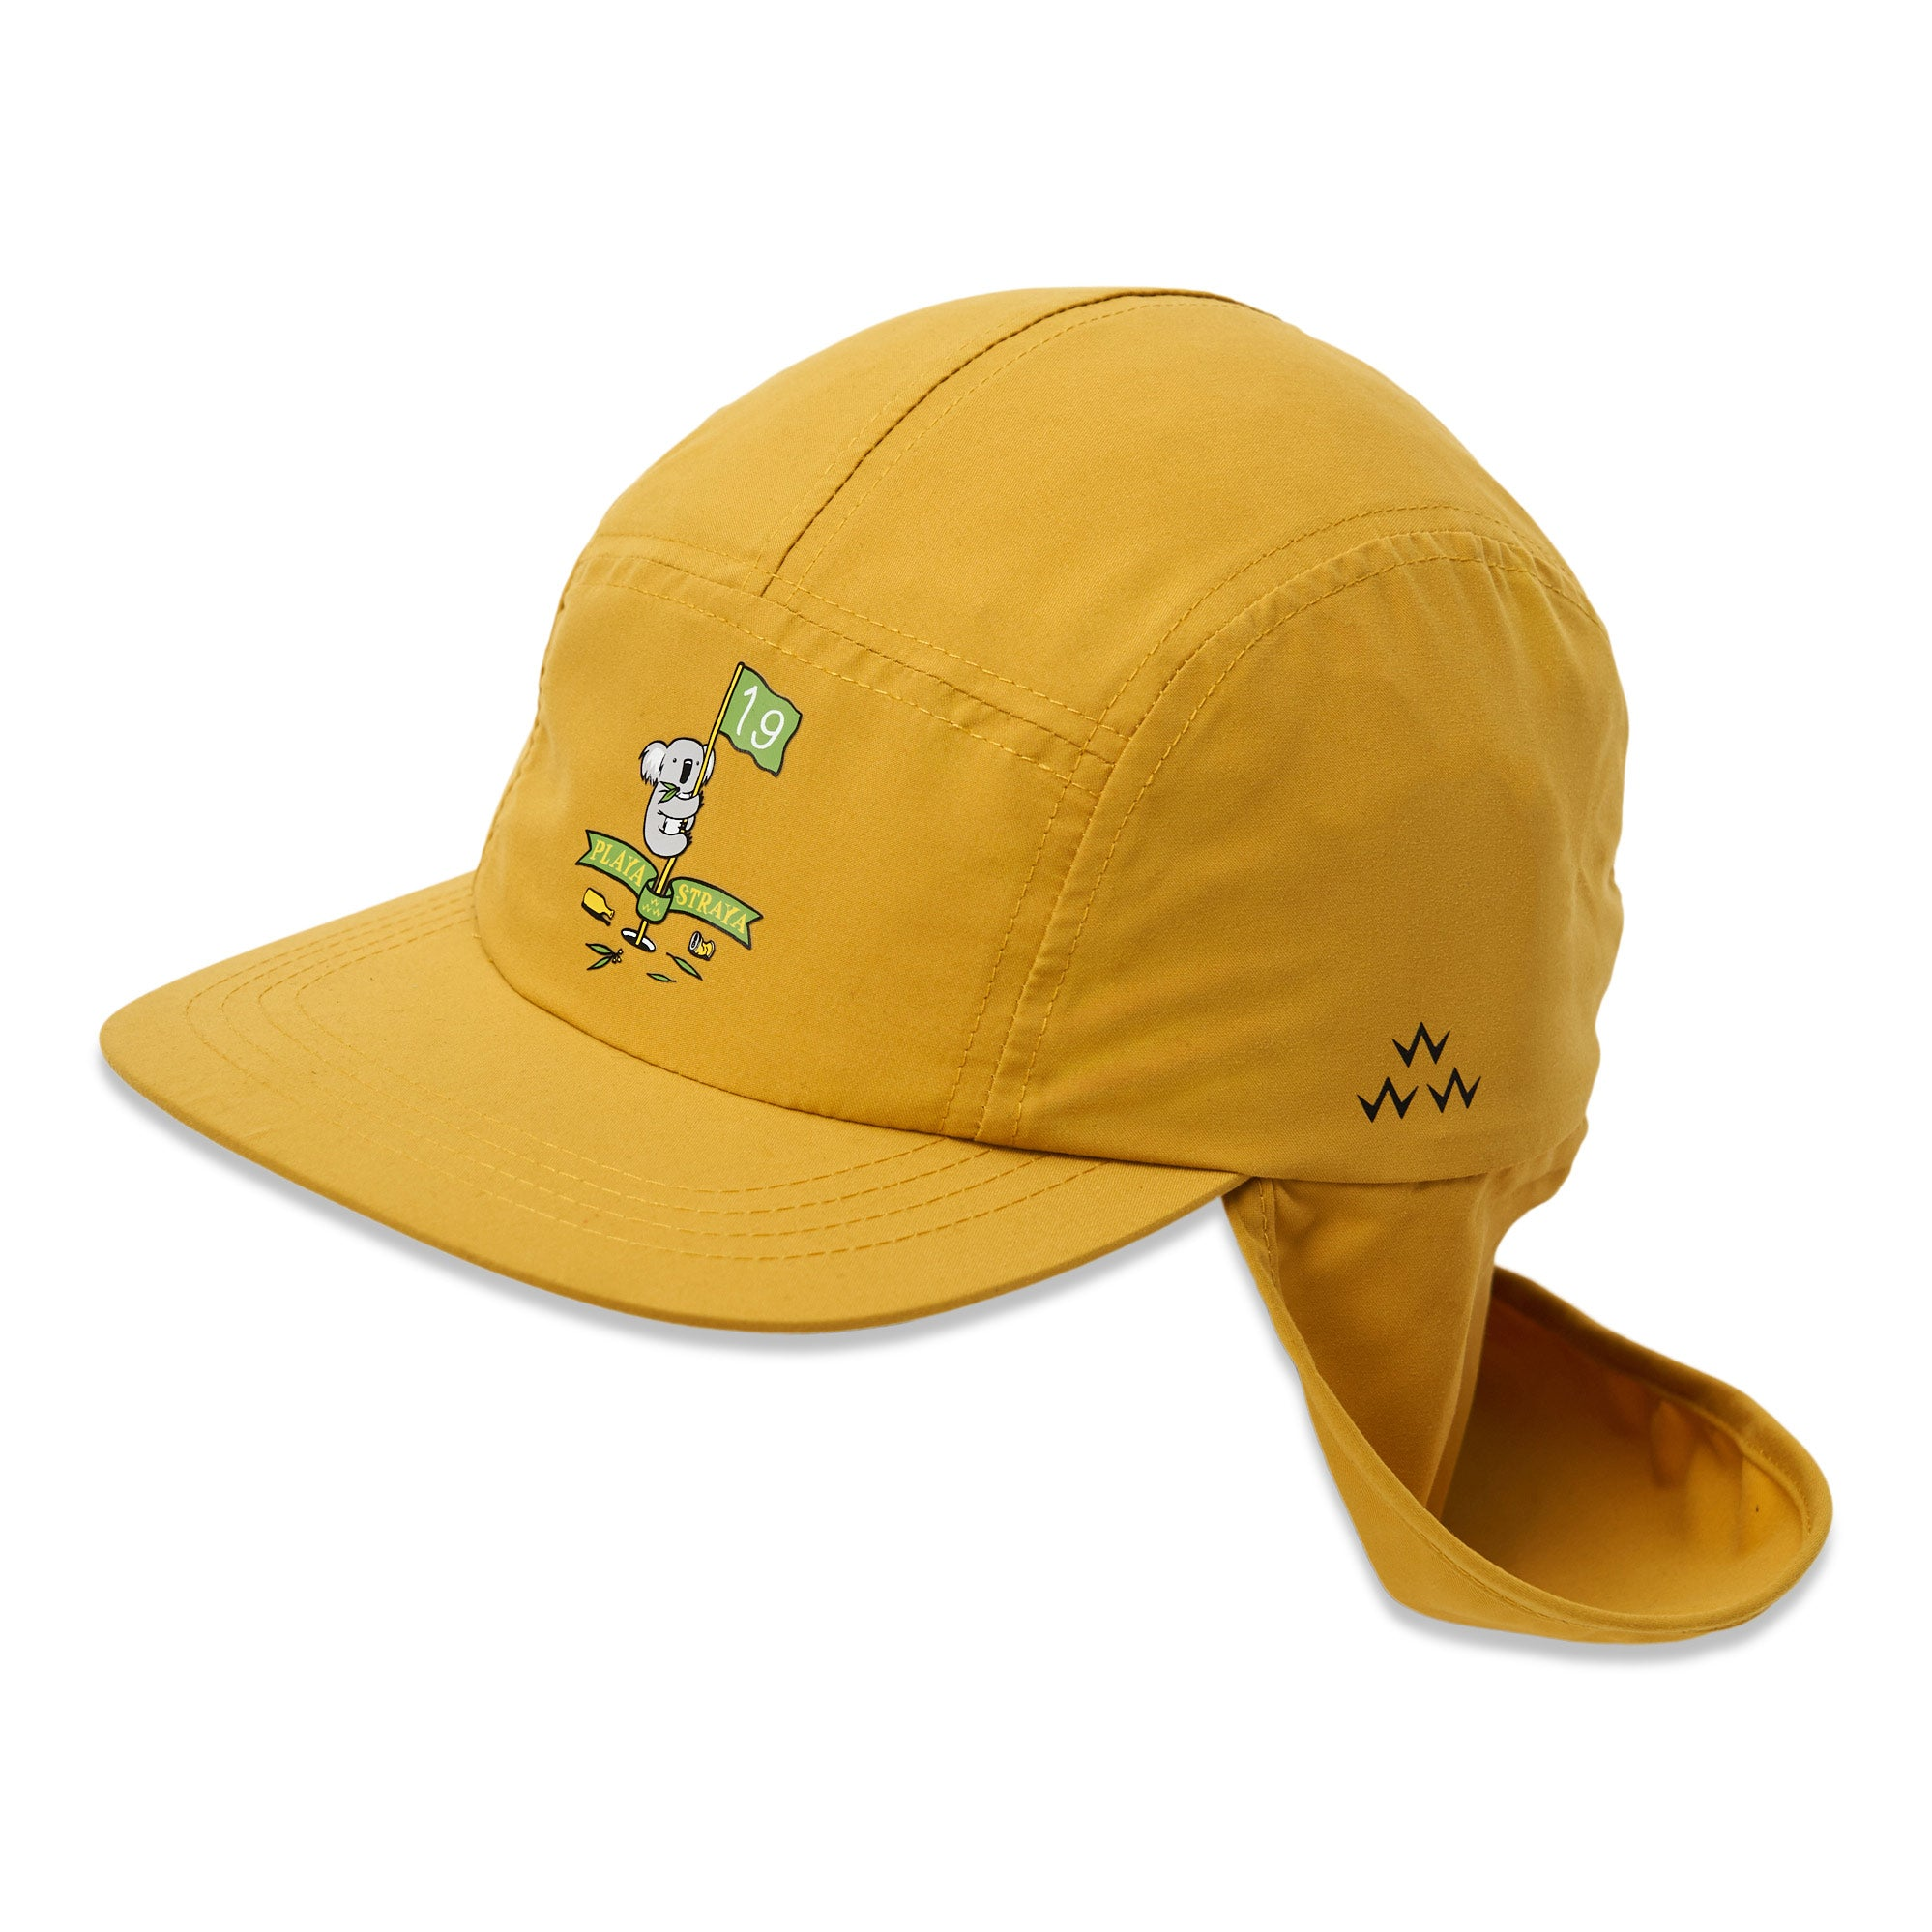 birds-of-condor-yellow-golf-legionnaires-koala-australia-hat-cap-front